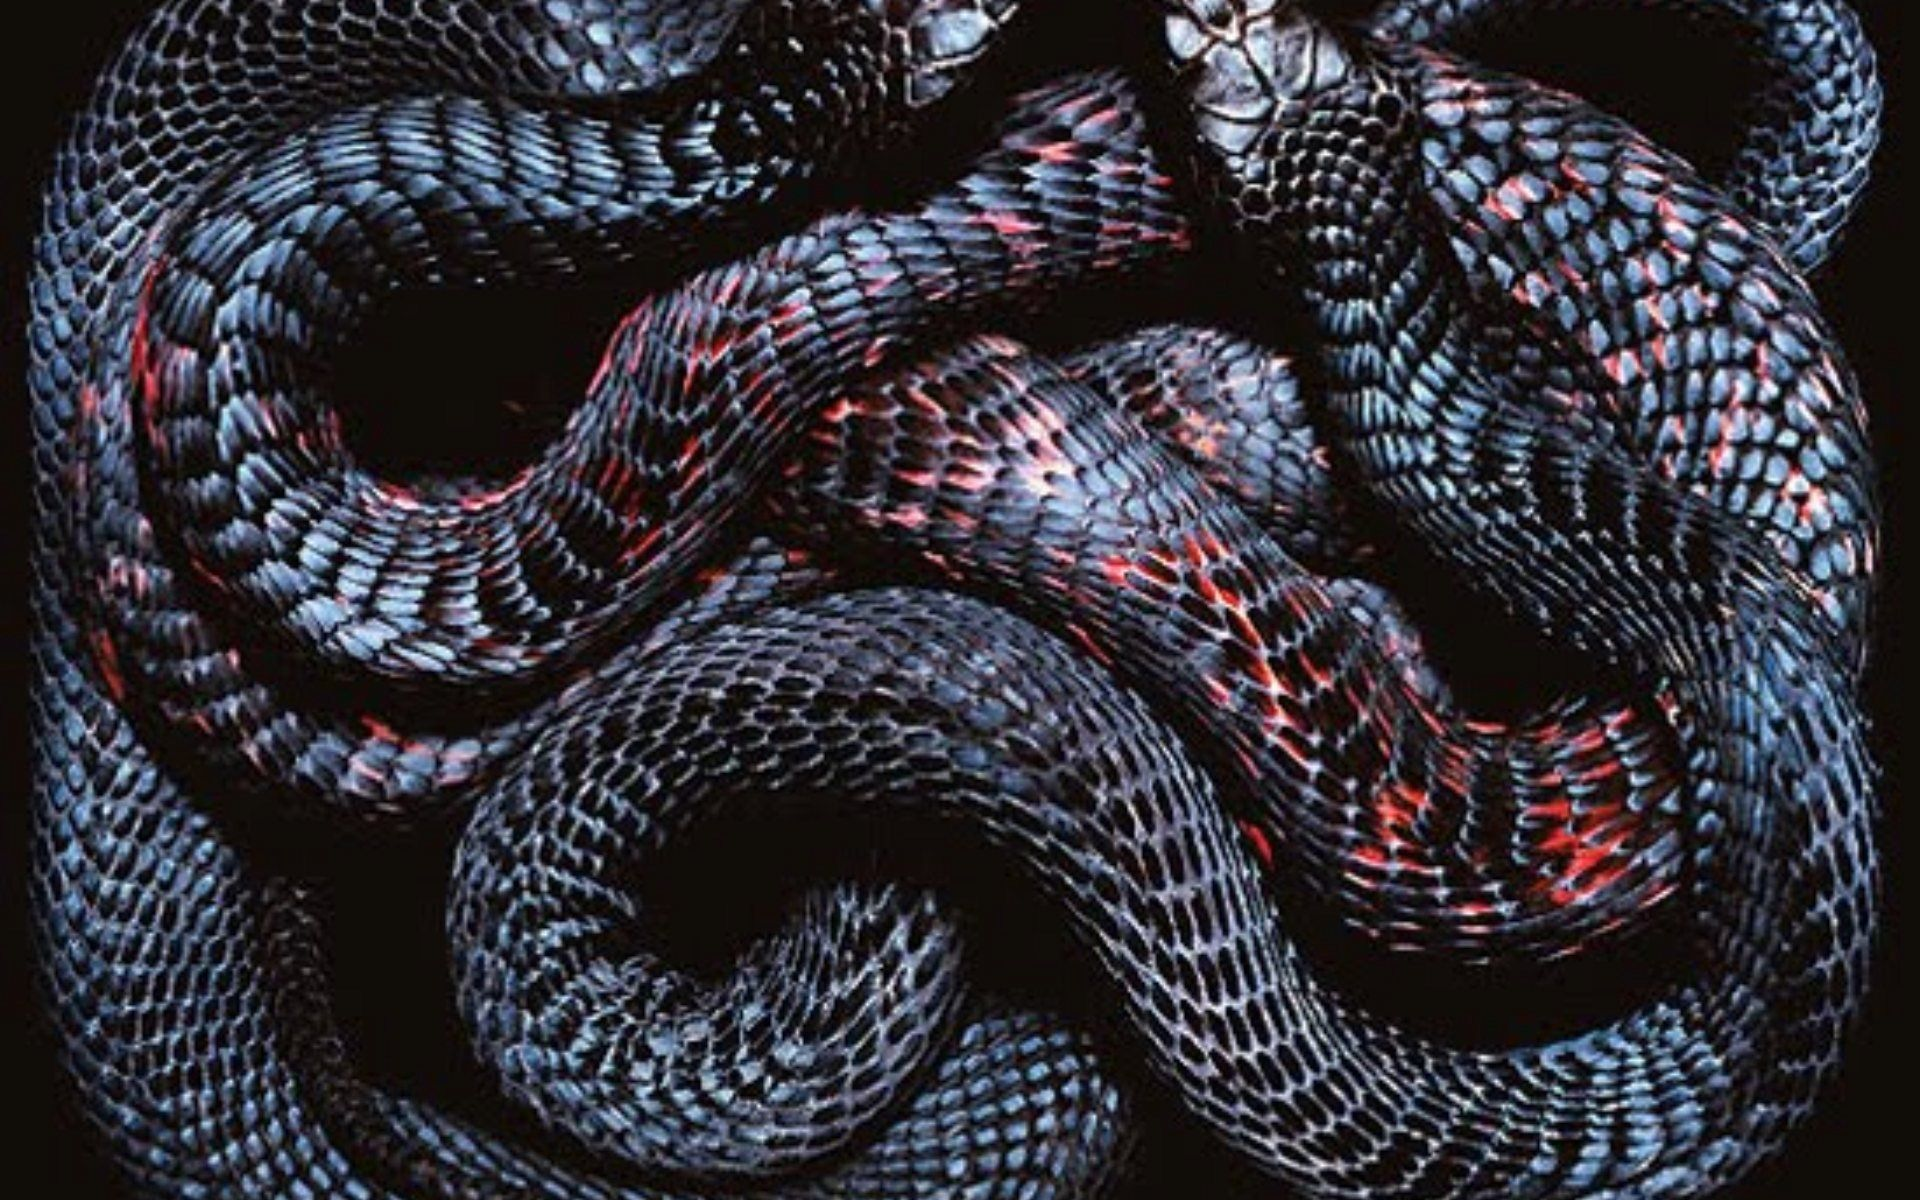 Undefined Black Snake Wallpapers 43 Wallpapers Adorable Wallpapers Snake Wallpaper Viper Snake Snake